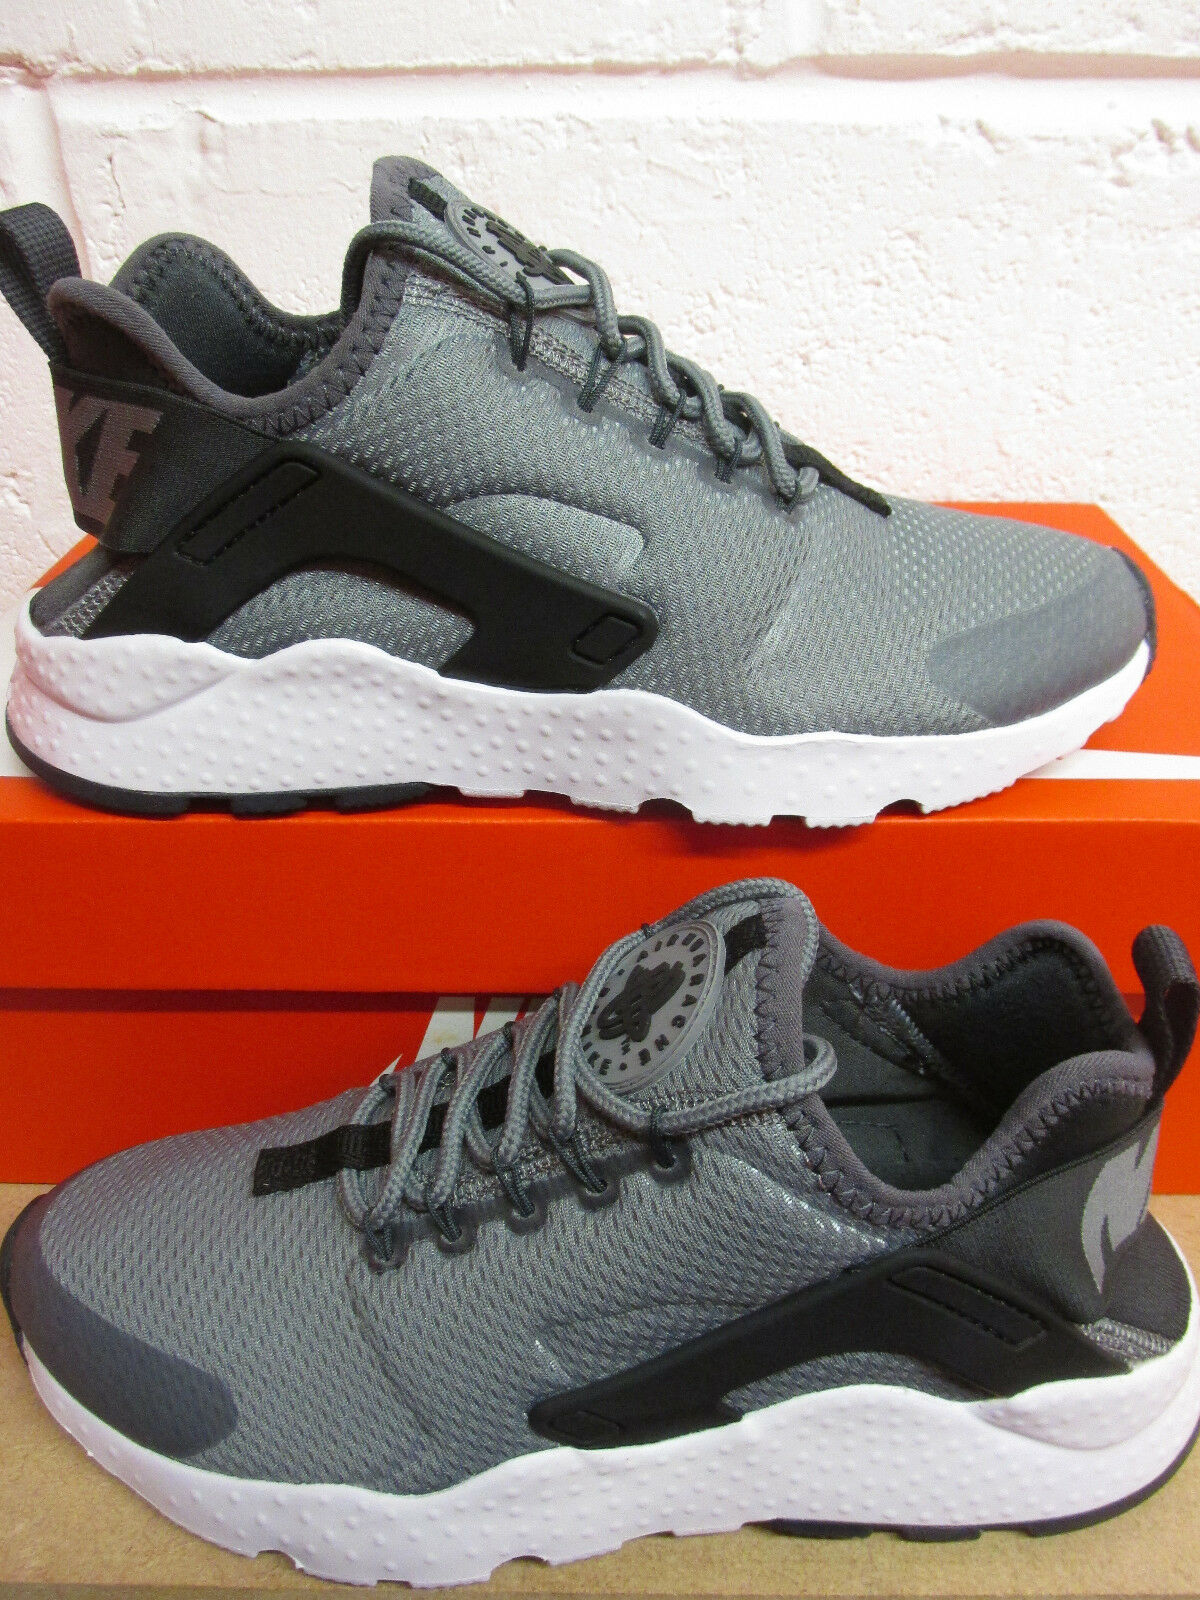 Nike Damenschuhe Air Huarache Run 007 Ultra Running Trainers 819151 007 Run Sneakers Schuhes 636668